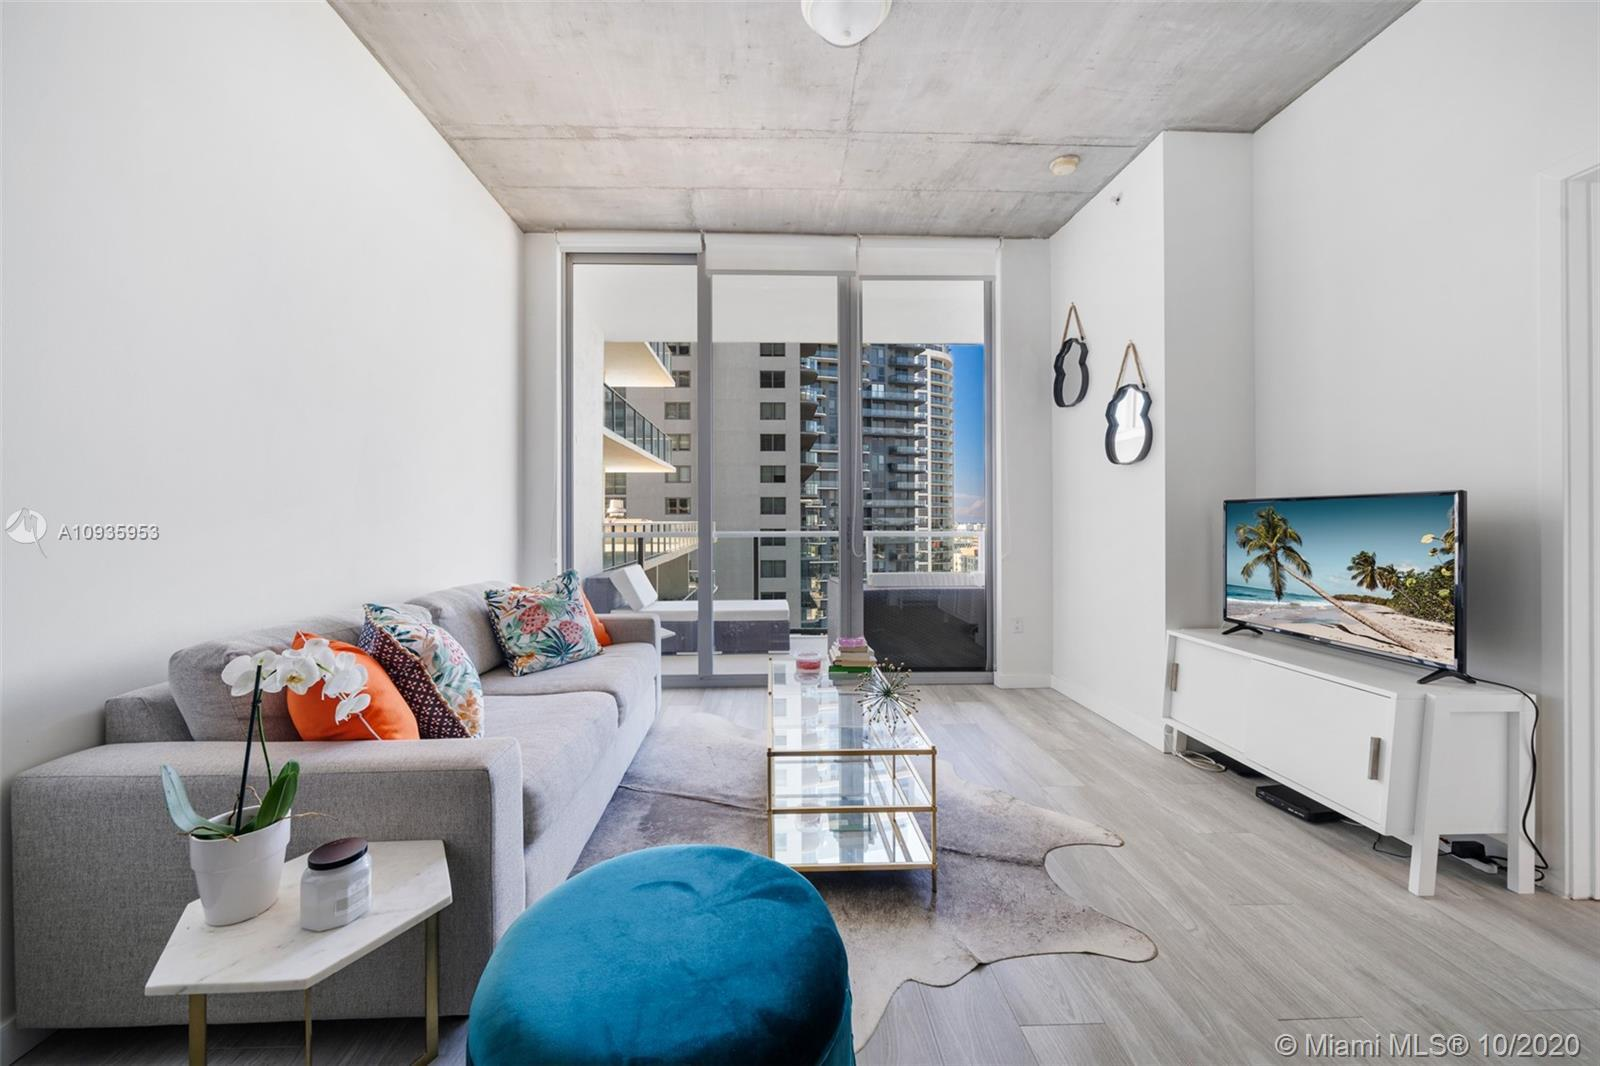 Fully renovated unit with high end Italian porcelain floors and bathroom tiles, quartz counter tops,